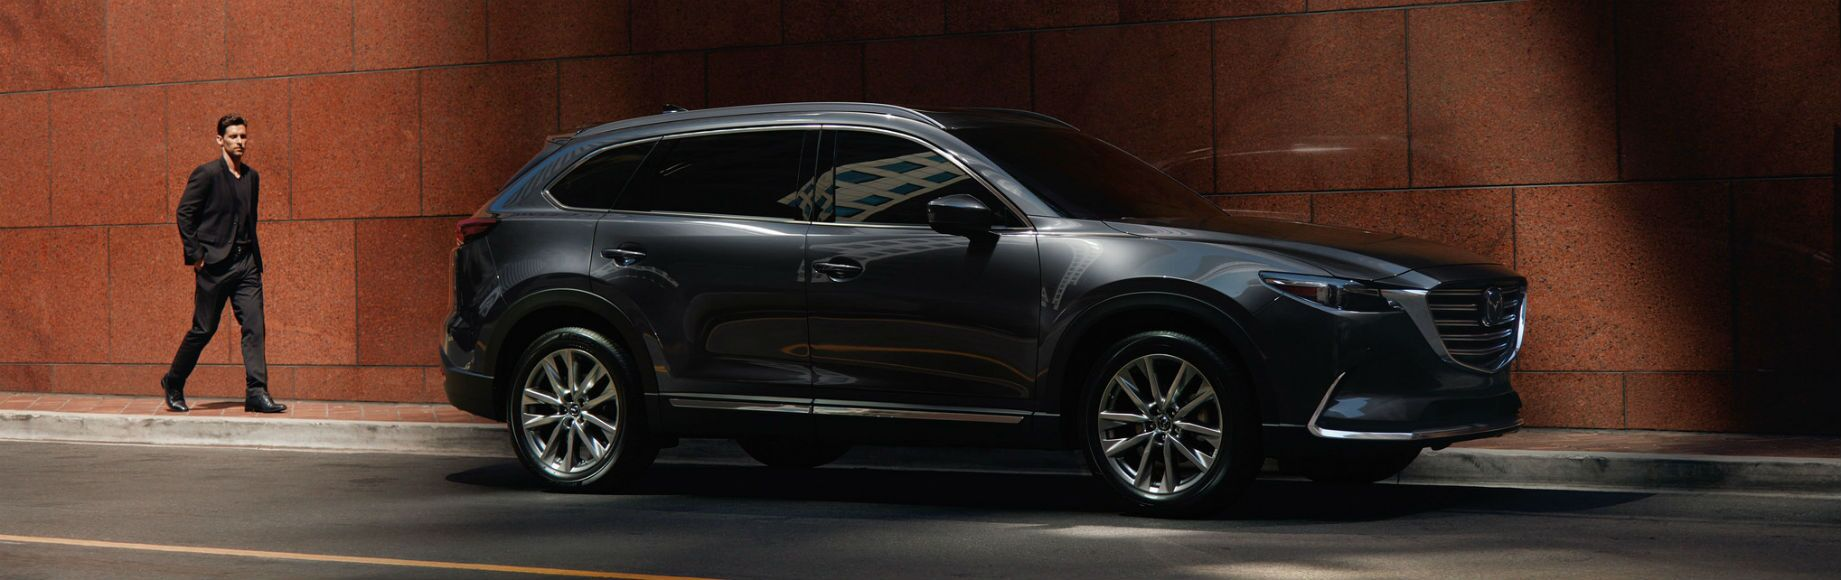 2019 Mazda CX-9 in Edinburg, TX